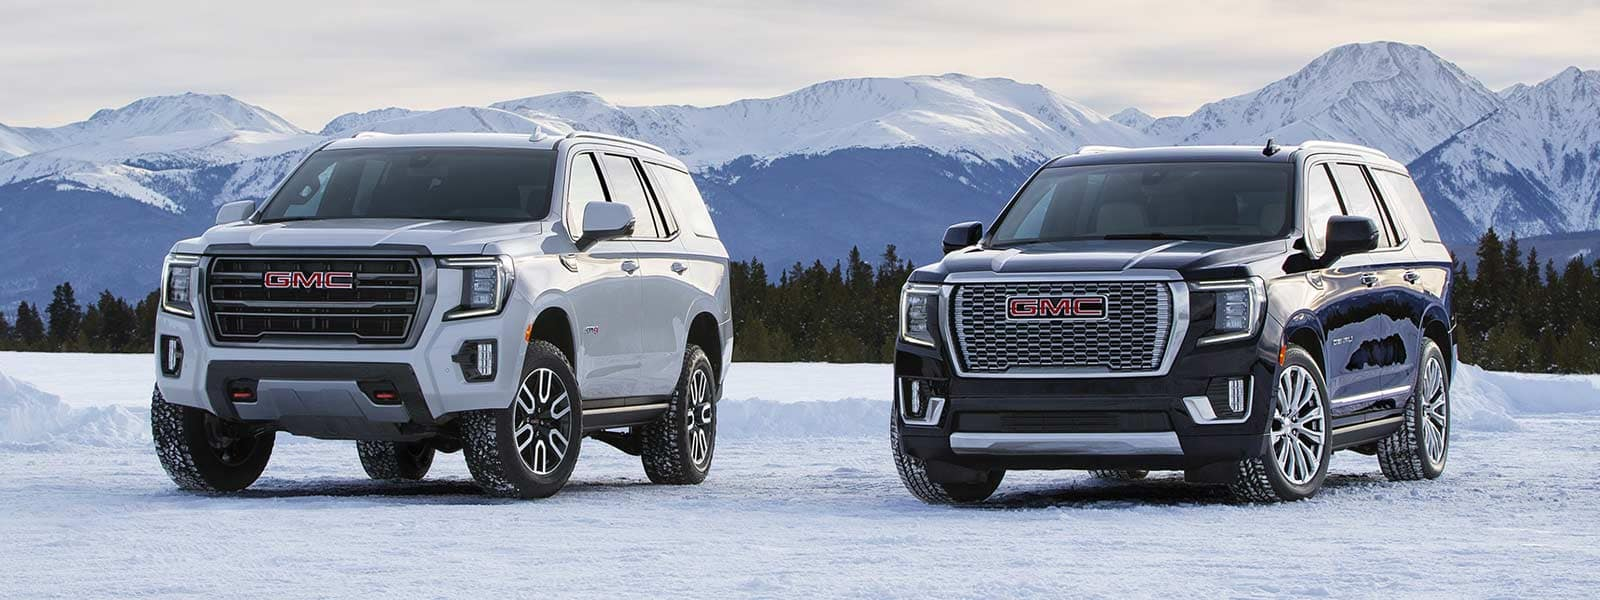 Lease or Finance new 2022 GMC Yukon in Thornhill ON